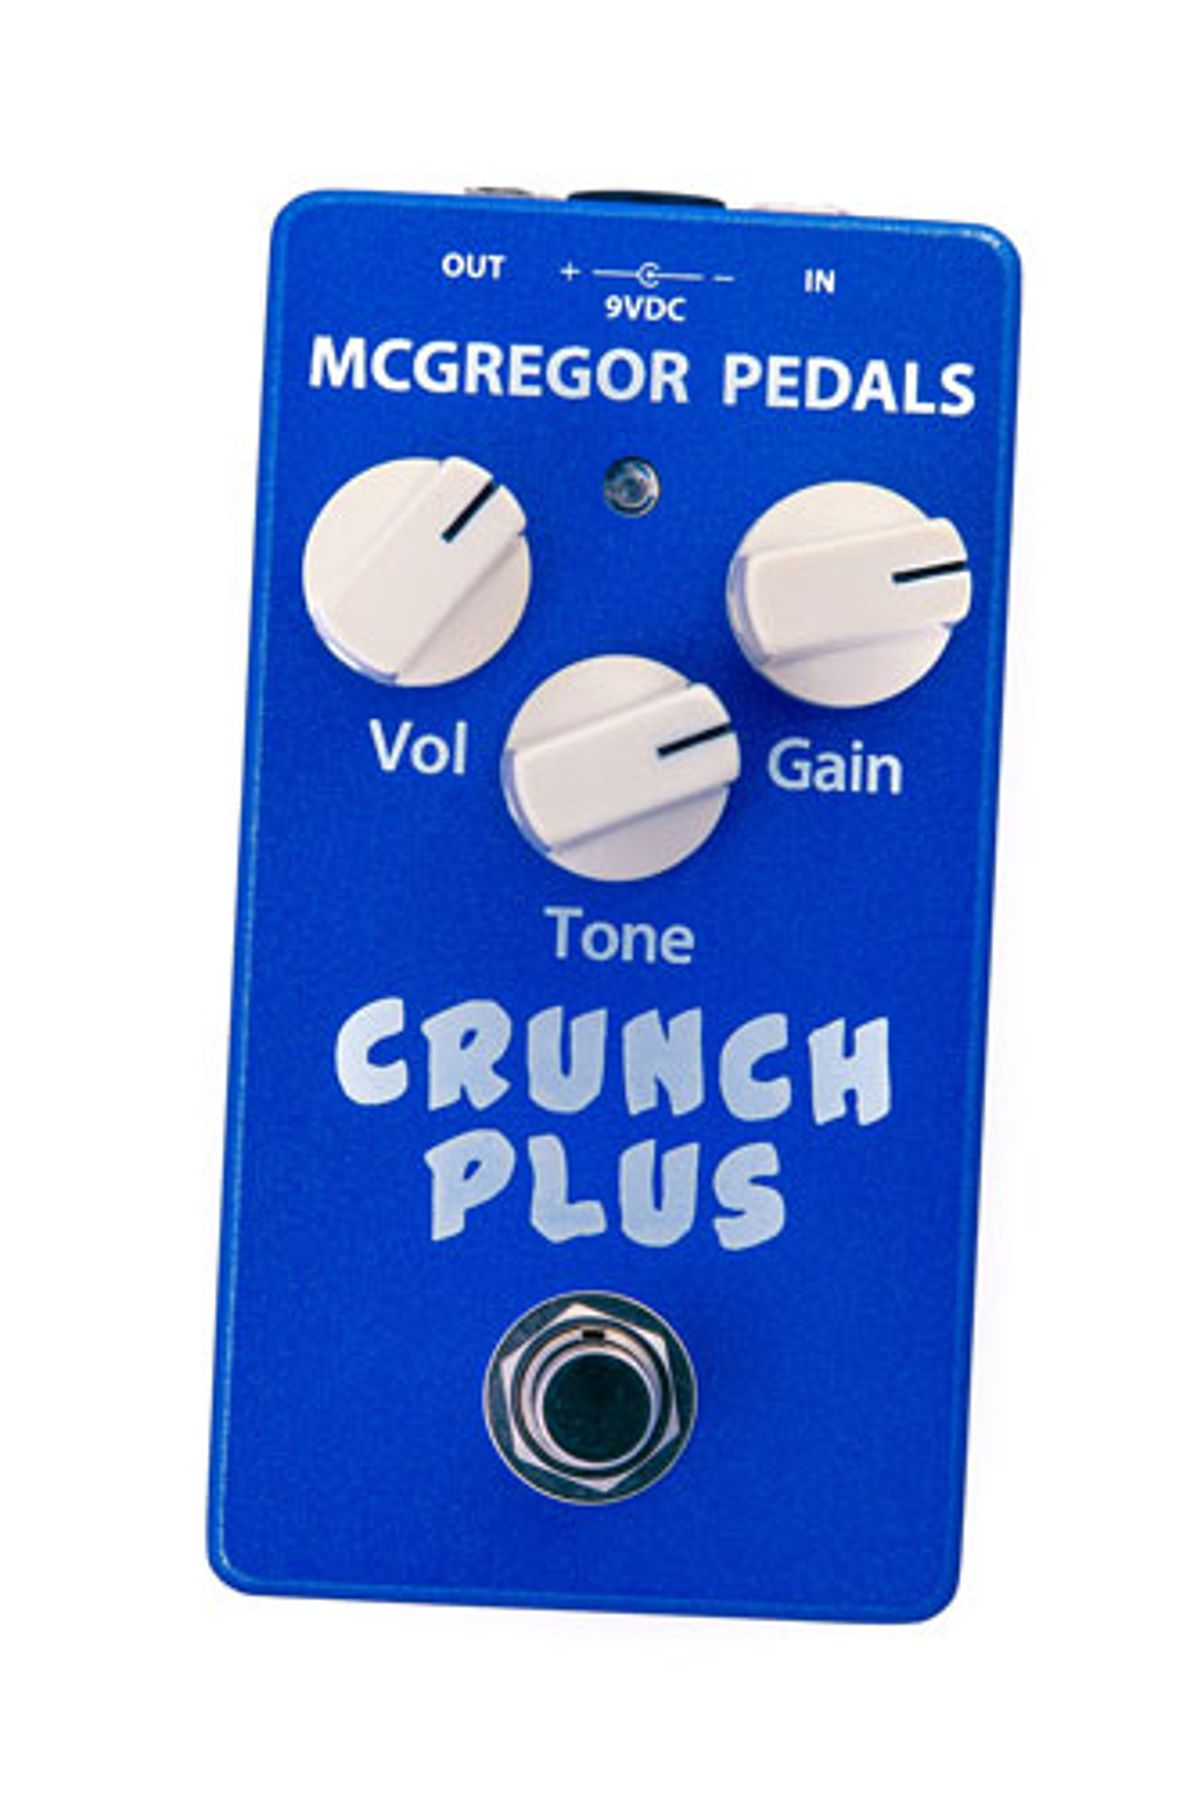 McGregor Pedals Releases the Crunch Plus Overdrive